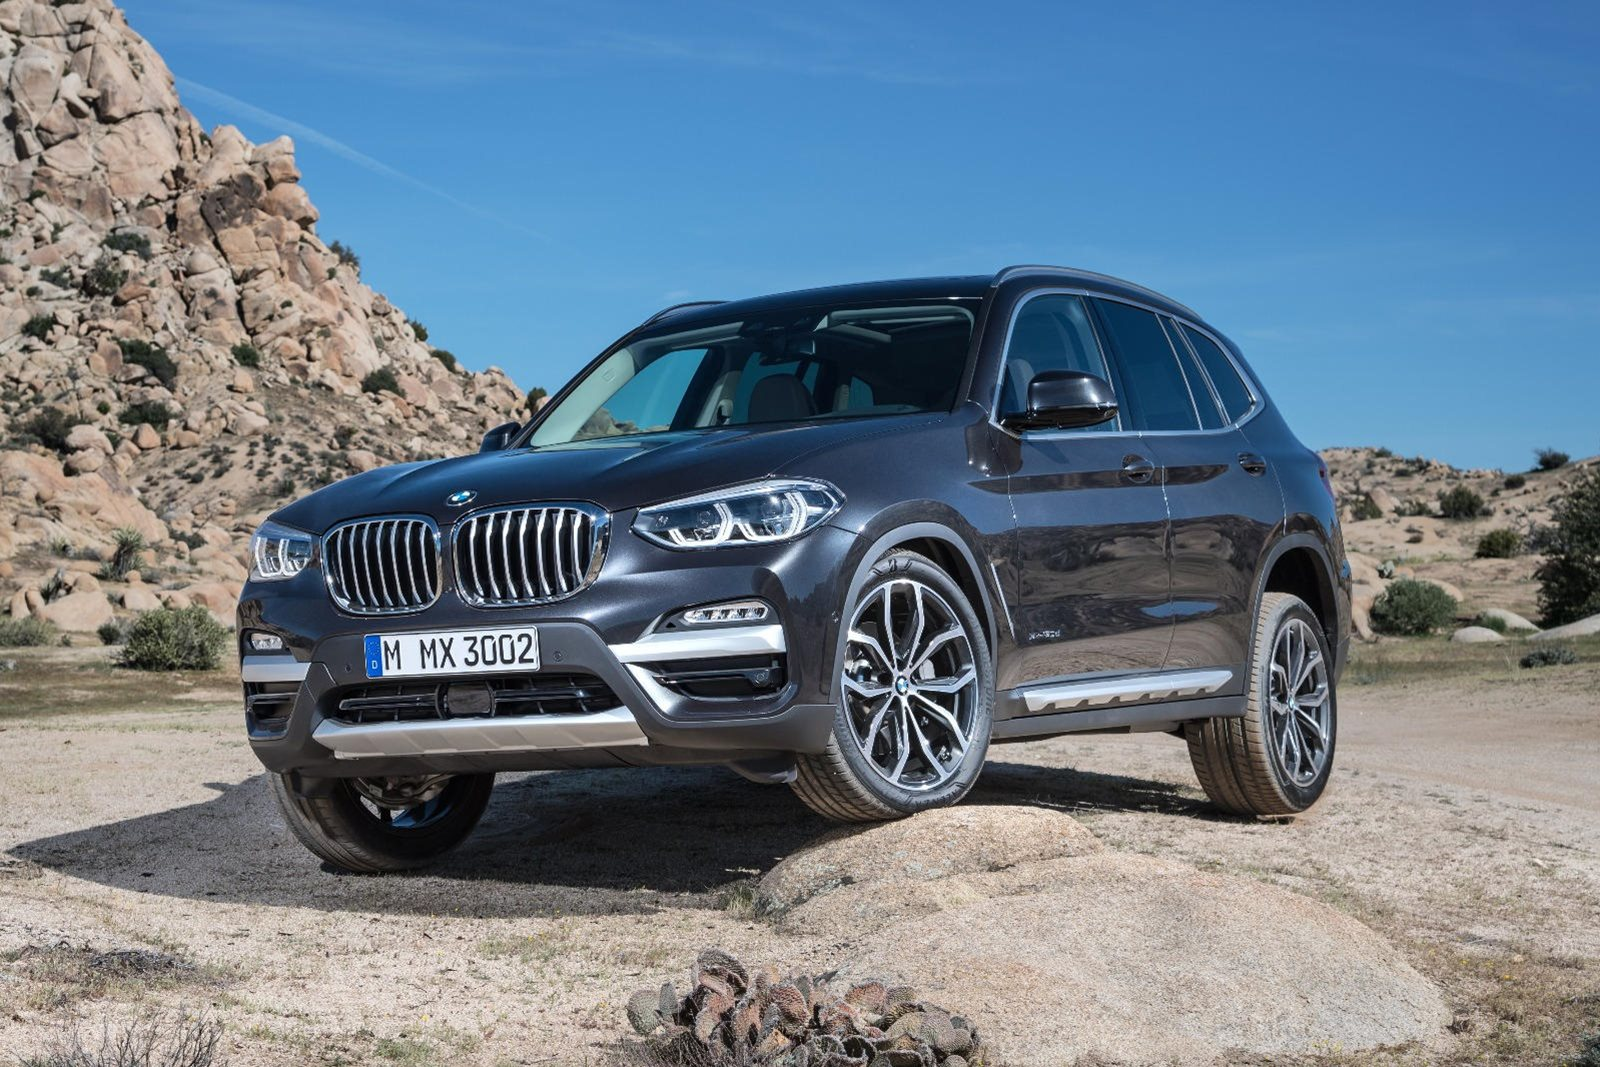 2020 Bmw X3 Review Trims Specs Price New Interior Features Exterior Design And Specifications Carbuzz